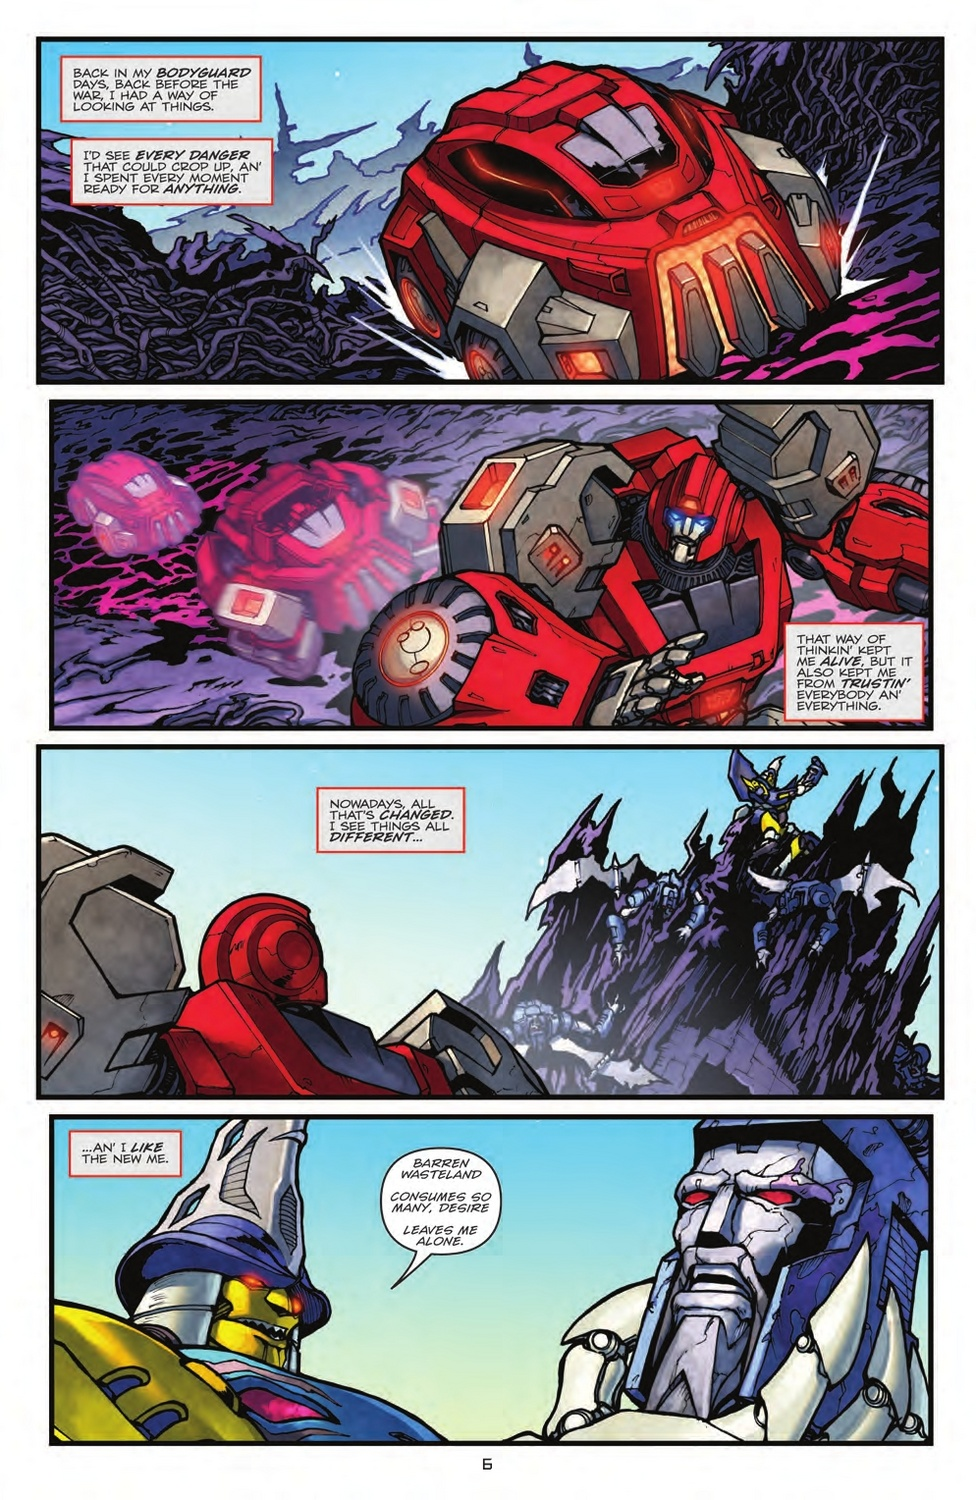 transformers-comics-robots-in-disguise-issue-5-page-6 Transformers Robots in Disguise #5